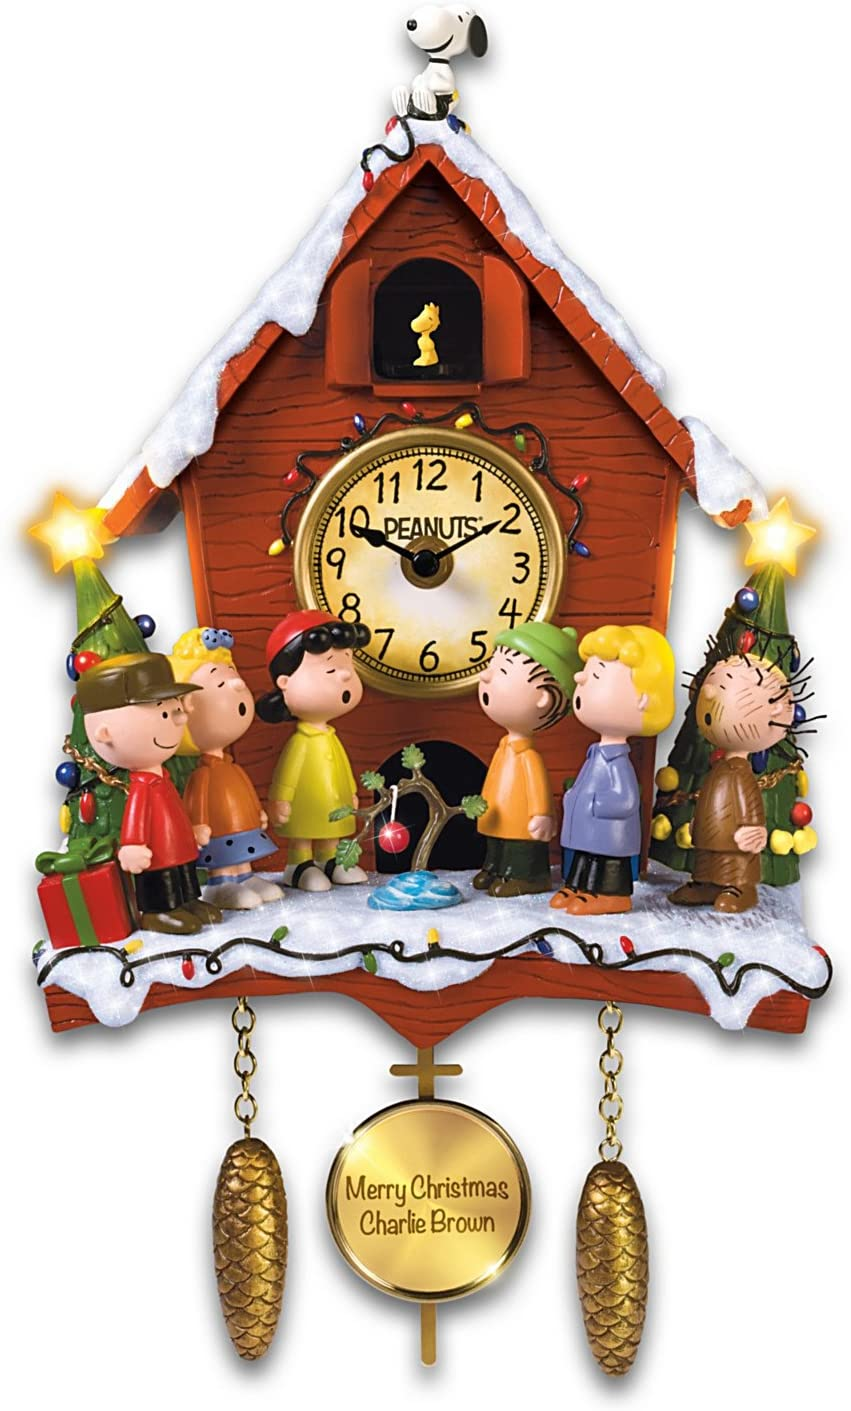 Amazon Com The Bradford Exchange A Charlie Brown Christmas Sculptural Cuckoo Clock With Lights Music And Motion Home Kitchen